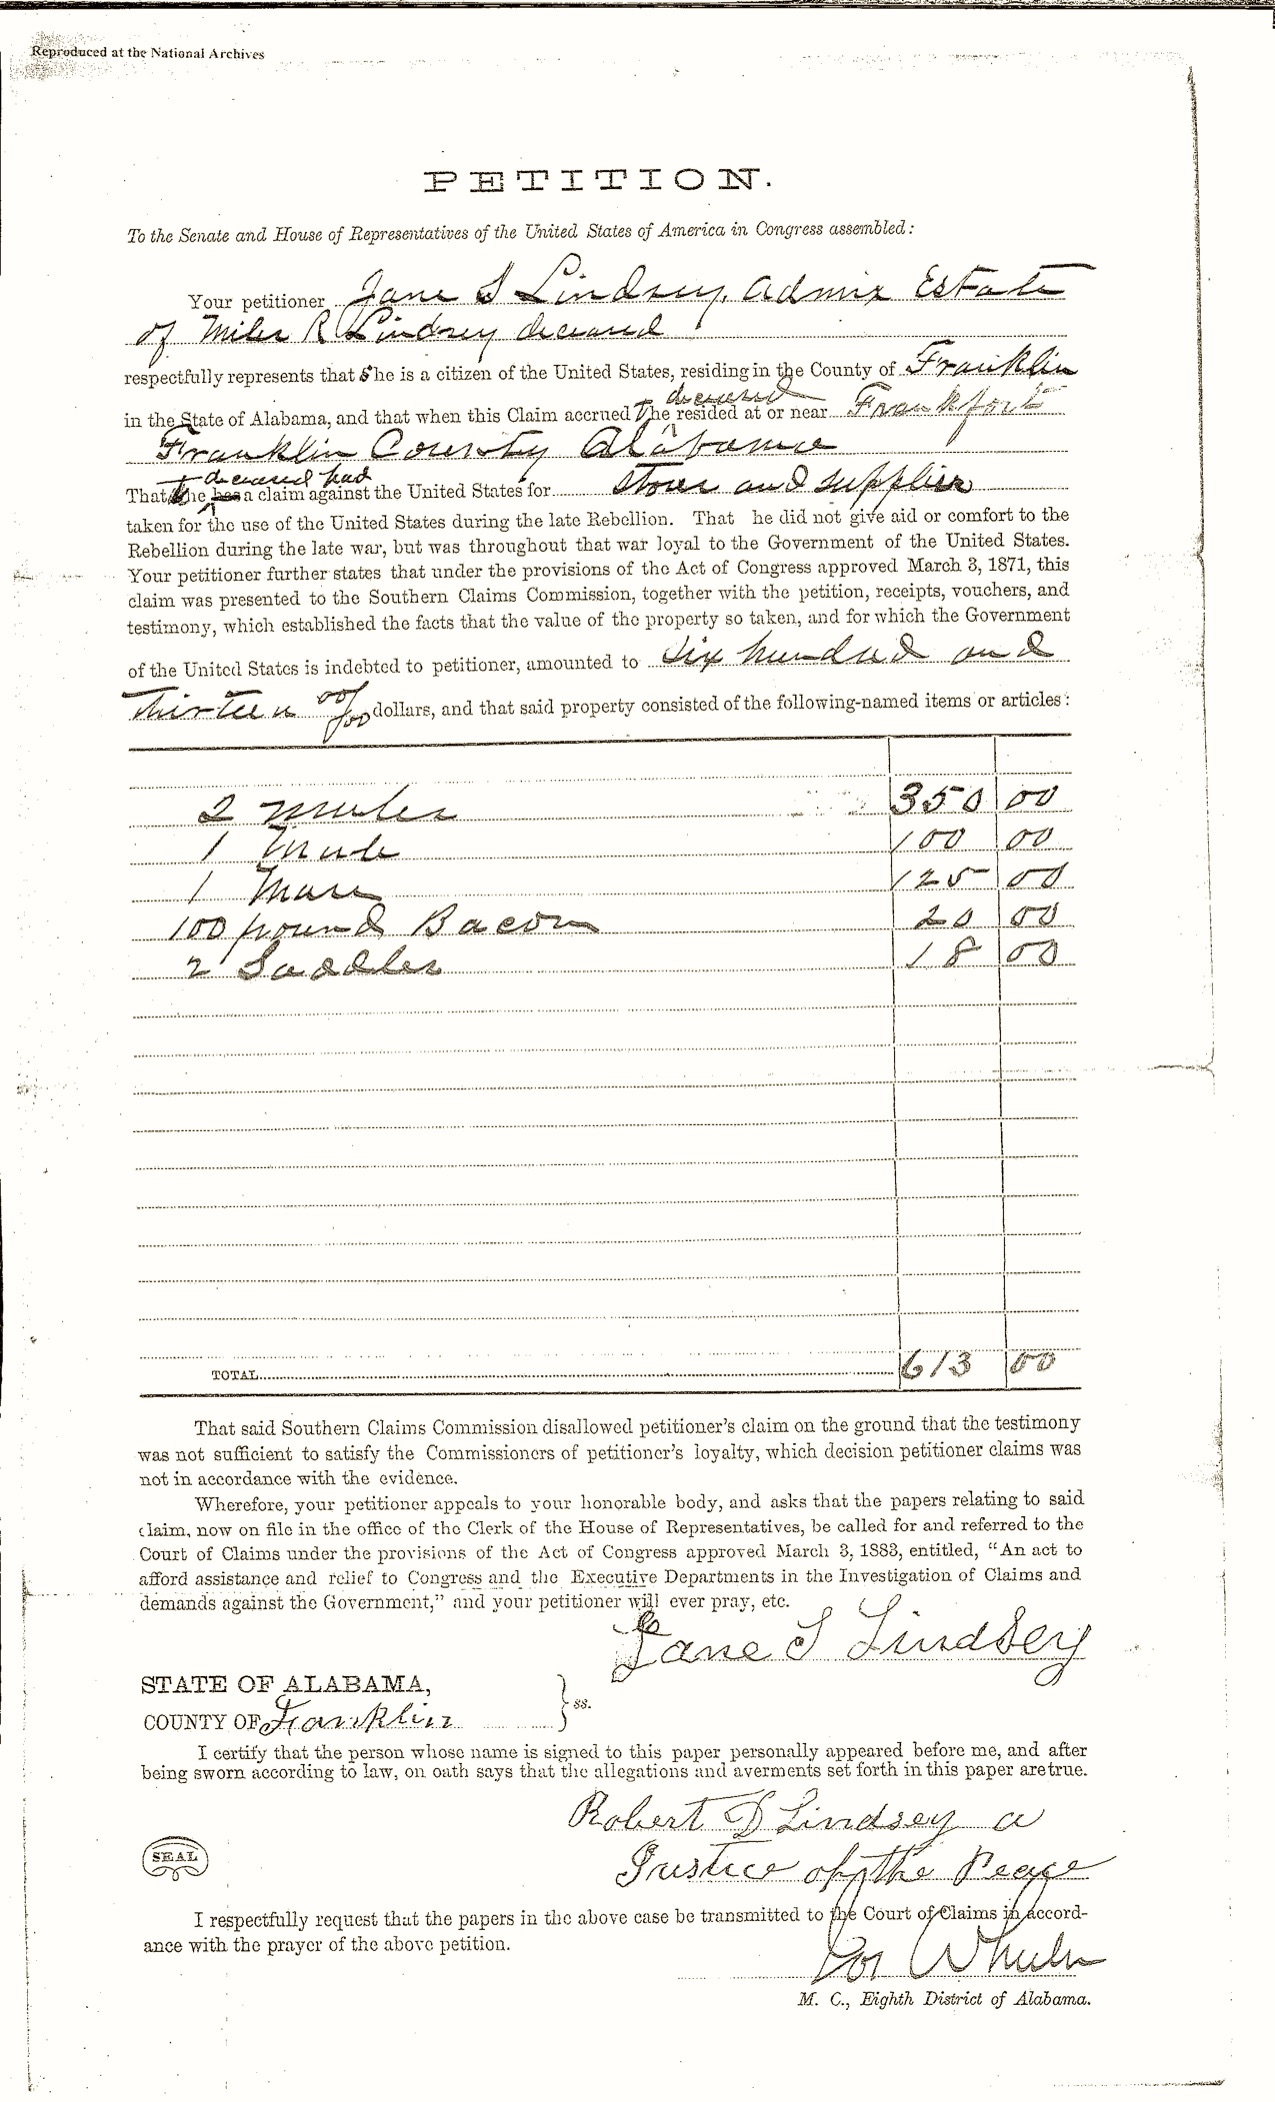 Lindsey, Miles R., Southern Claims Commission File, Jane's Petition